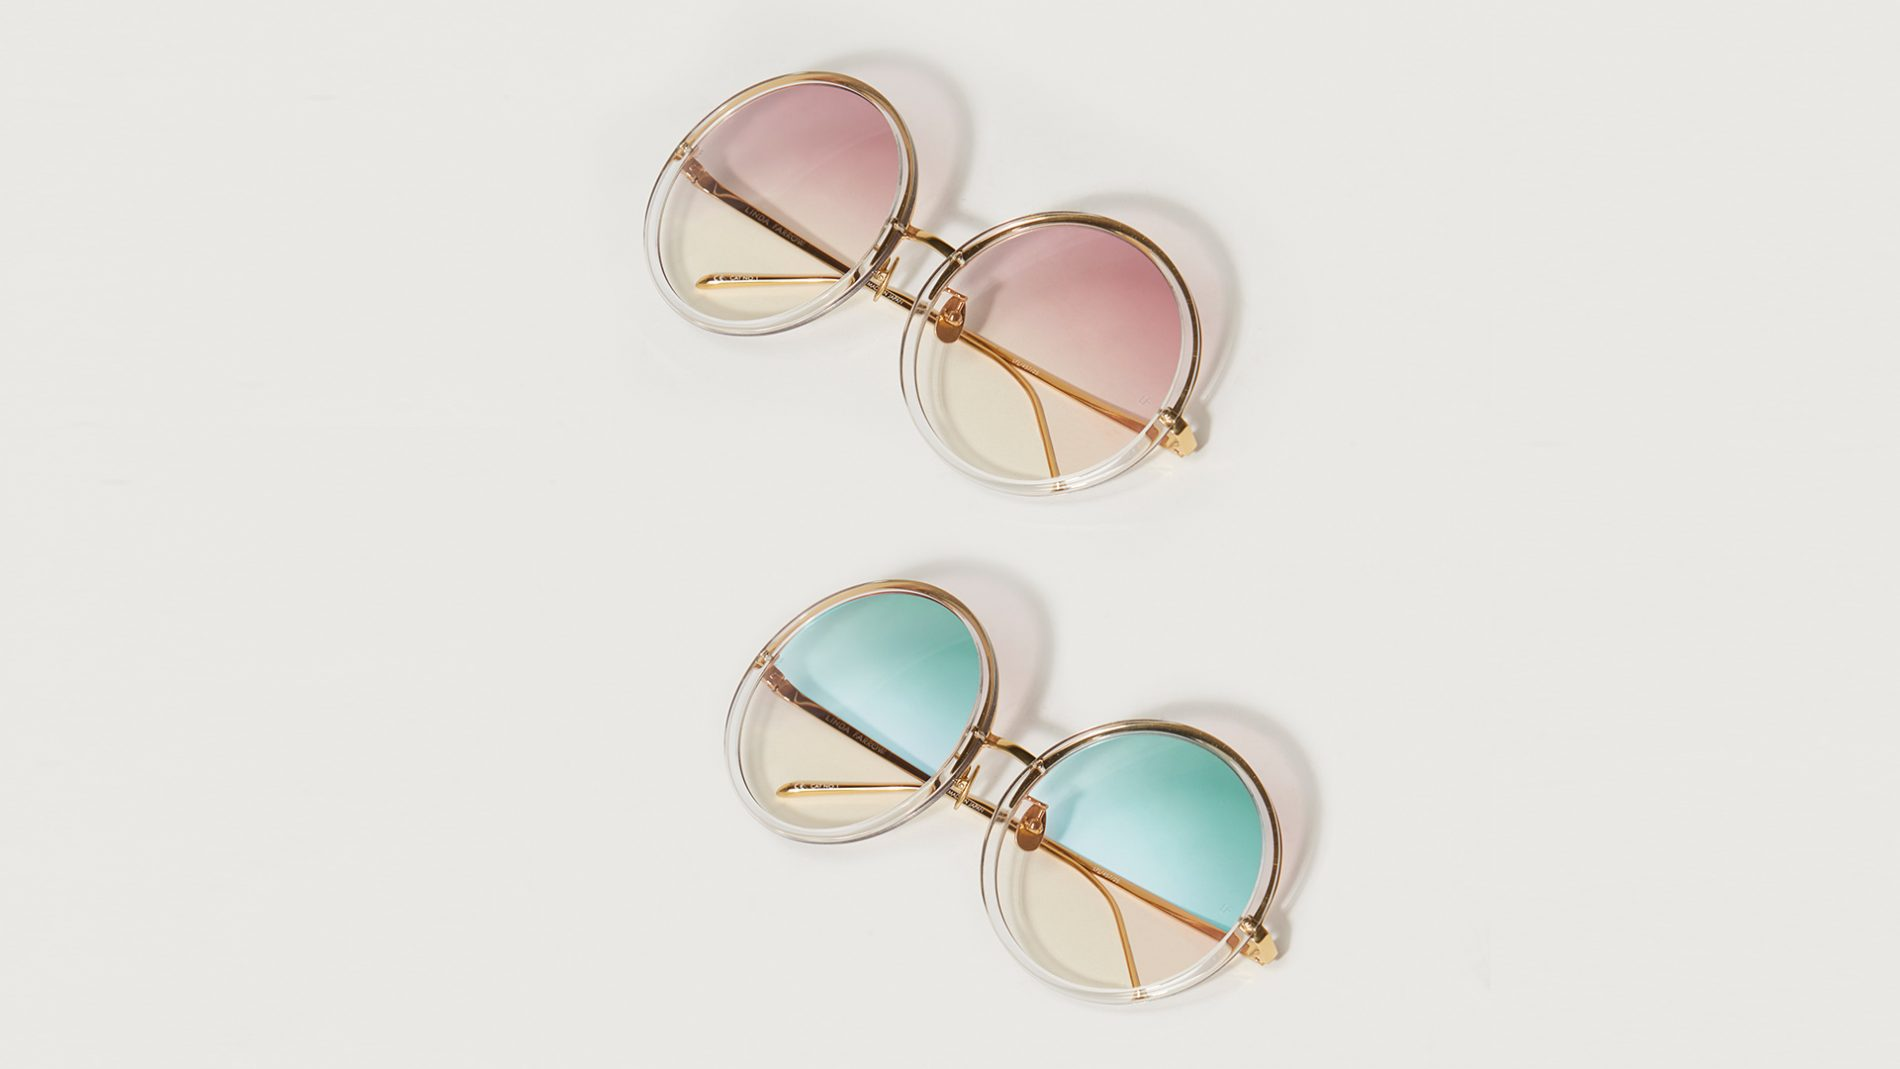 El Corte Inglés Designer Sunglasses Accessories Linda Farrow